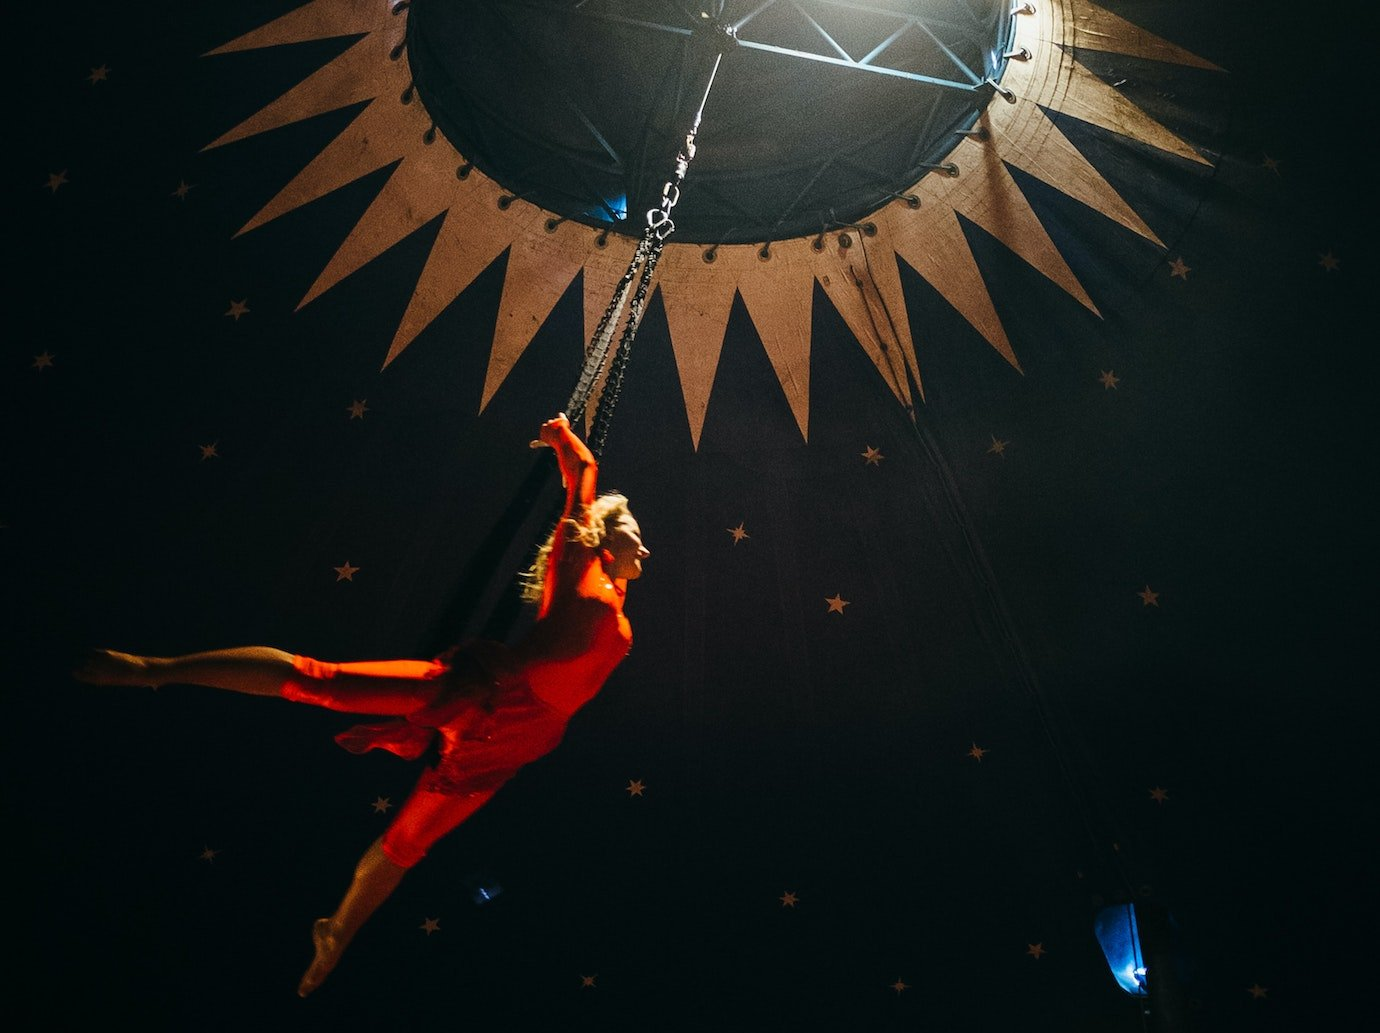 'Spin, world, spin, circus:' two avant garde Ukrainian poems celebrating circus life